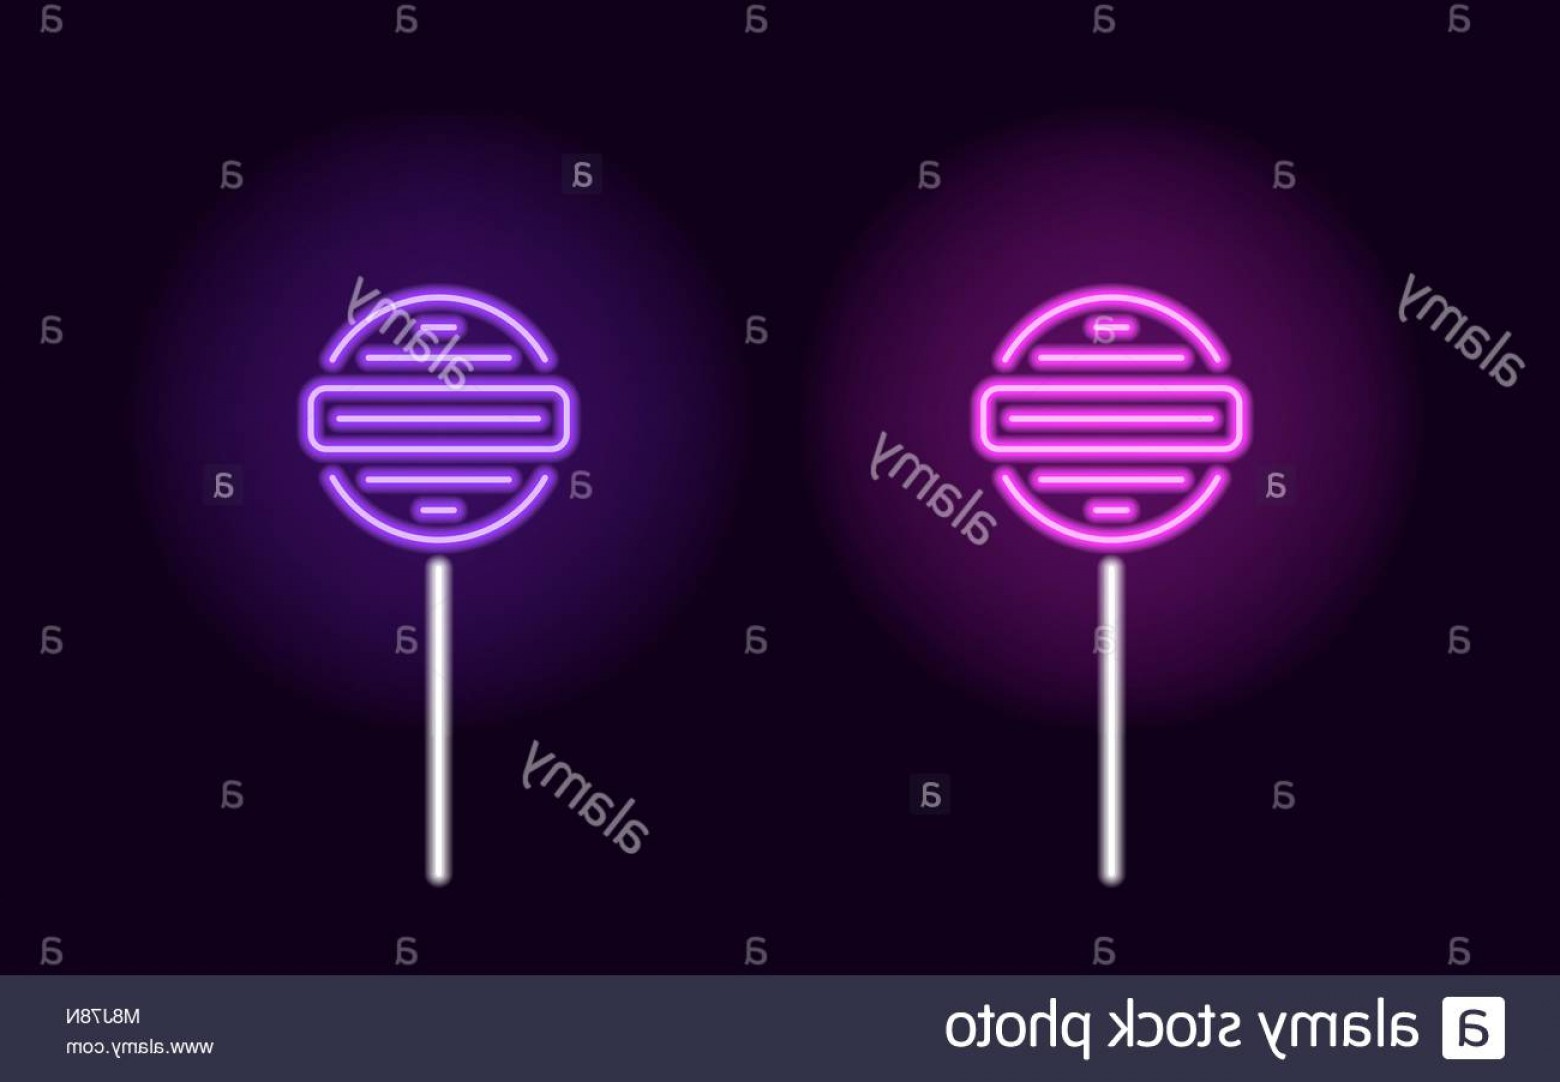 Lollipop Vector Silhouette: Stock Photo Purple And Violet Neon Lollipop Vector Silhouette Of Neon Fruit Lollipop